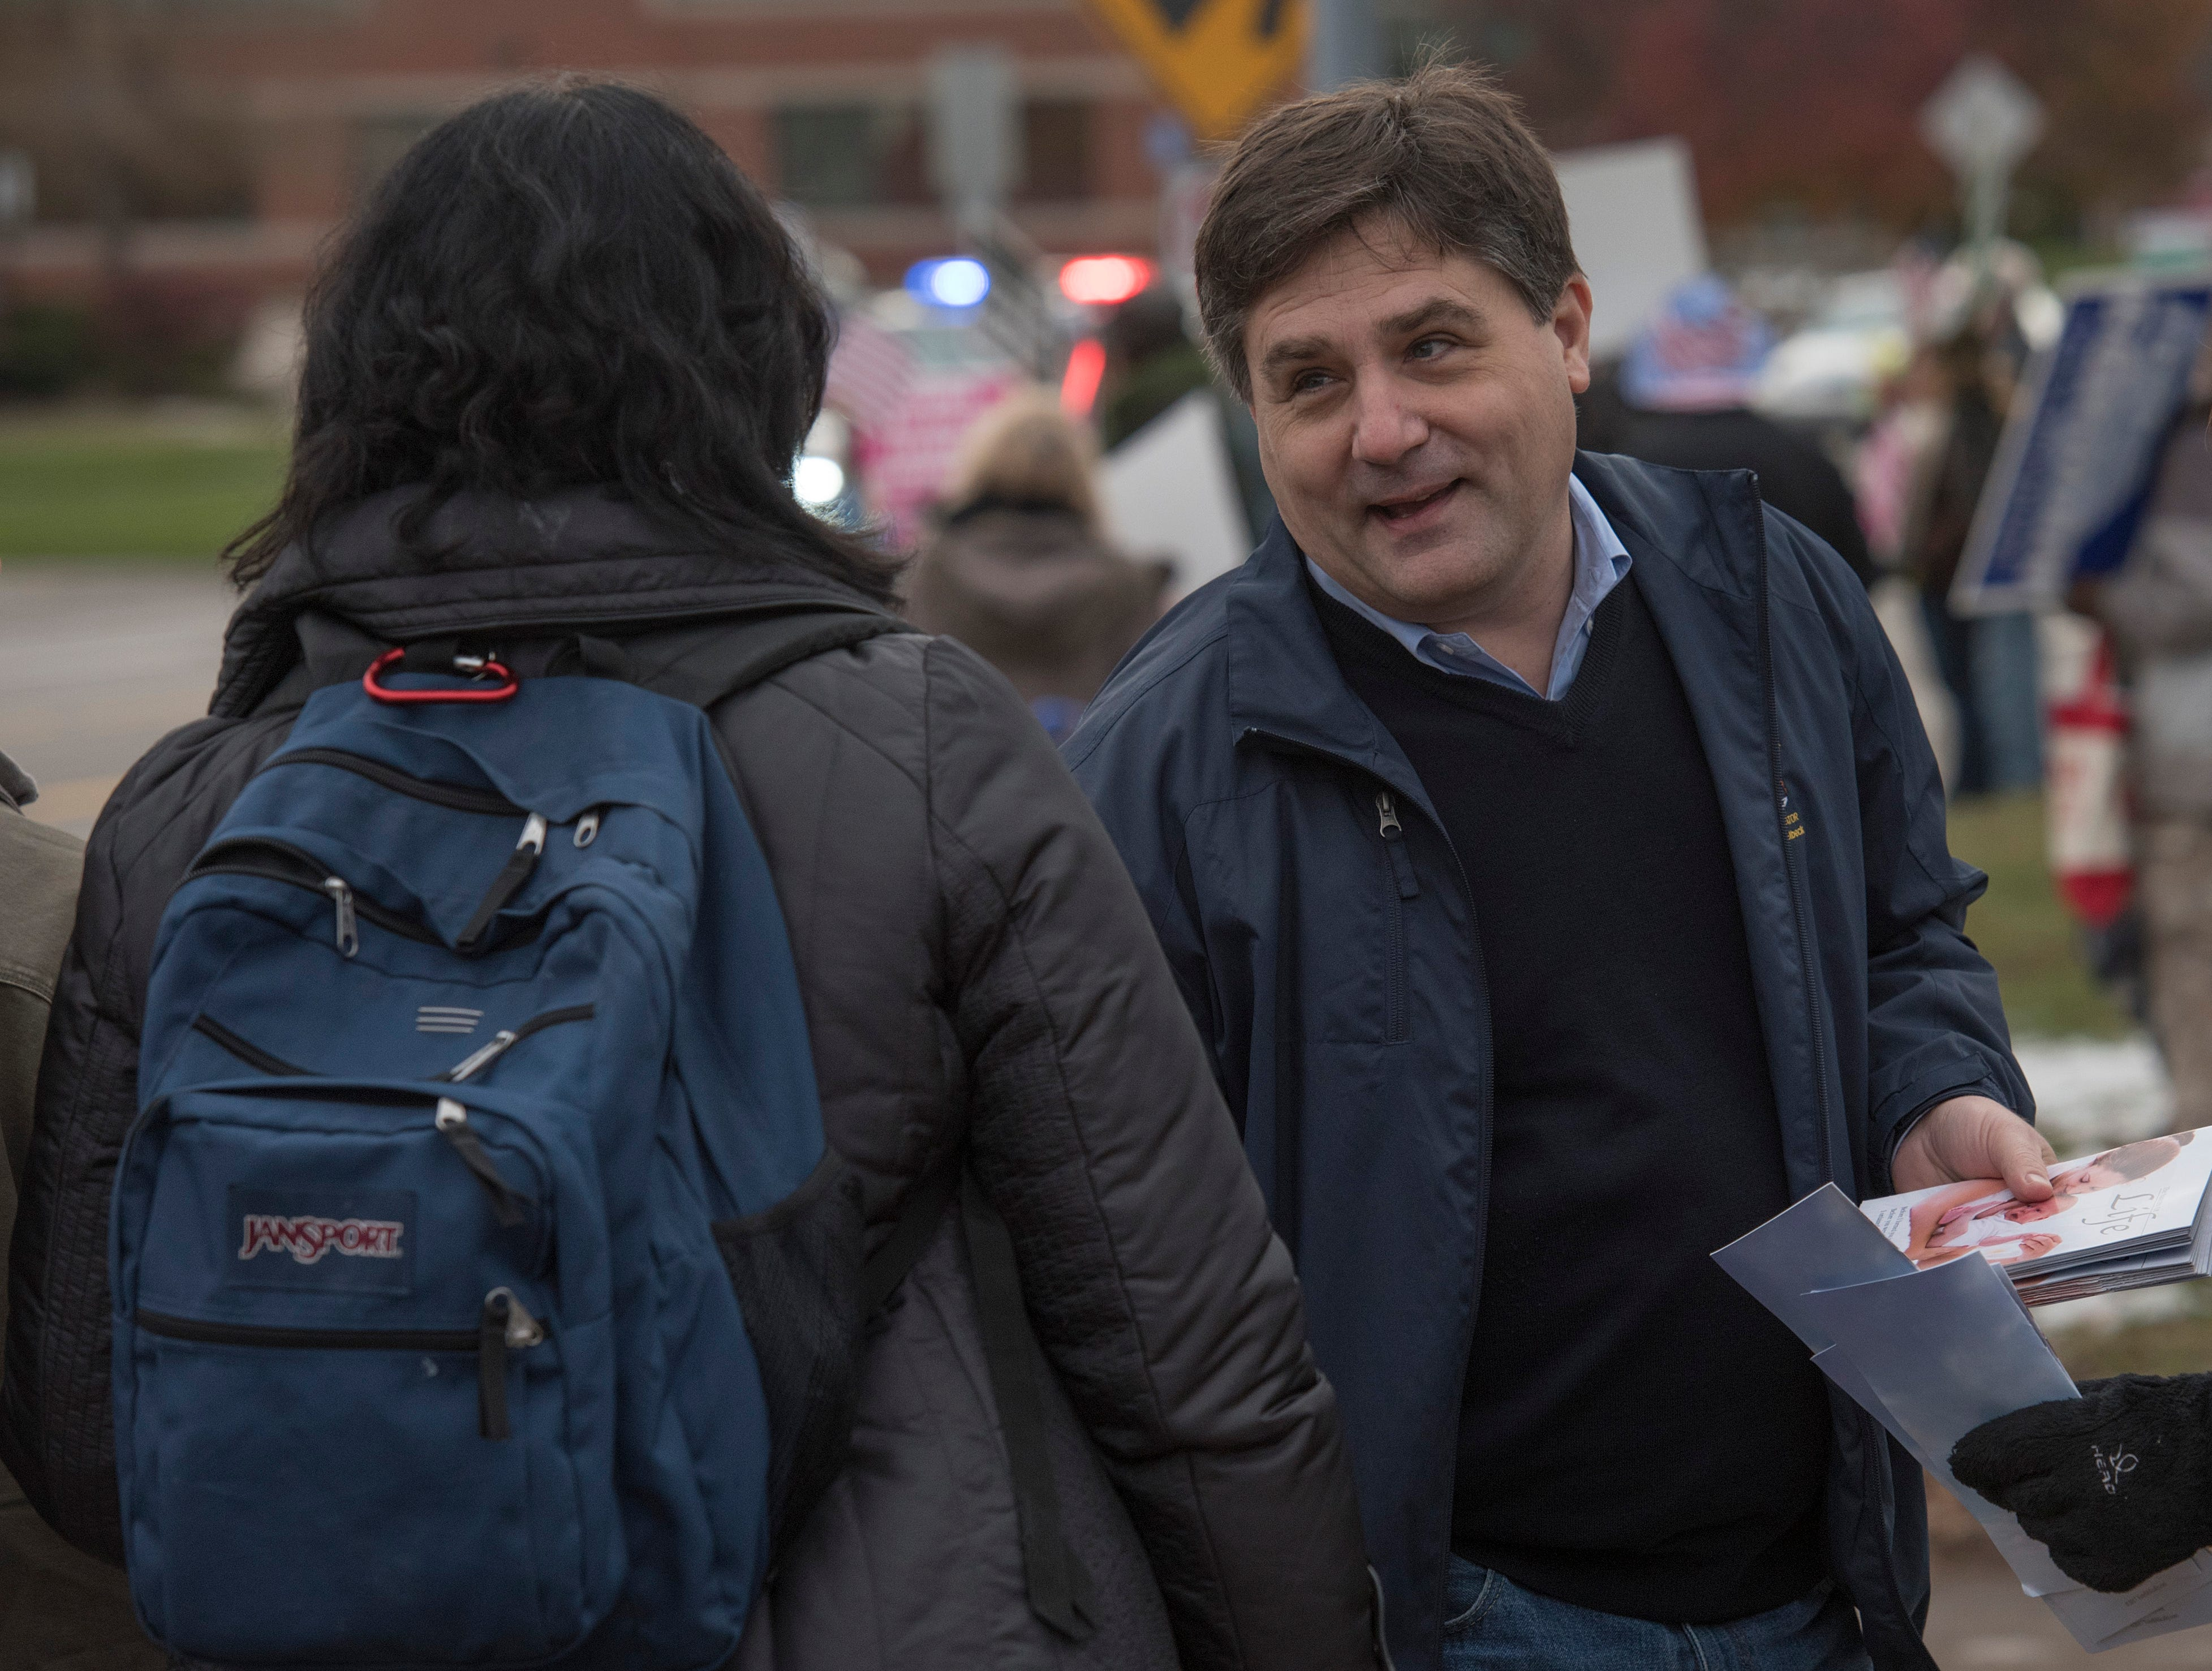 State Senator Patrick Colbeck, of Canton speaks with protesters at the Planned Parenthood facility.